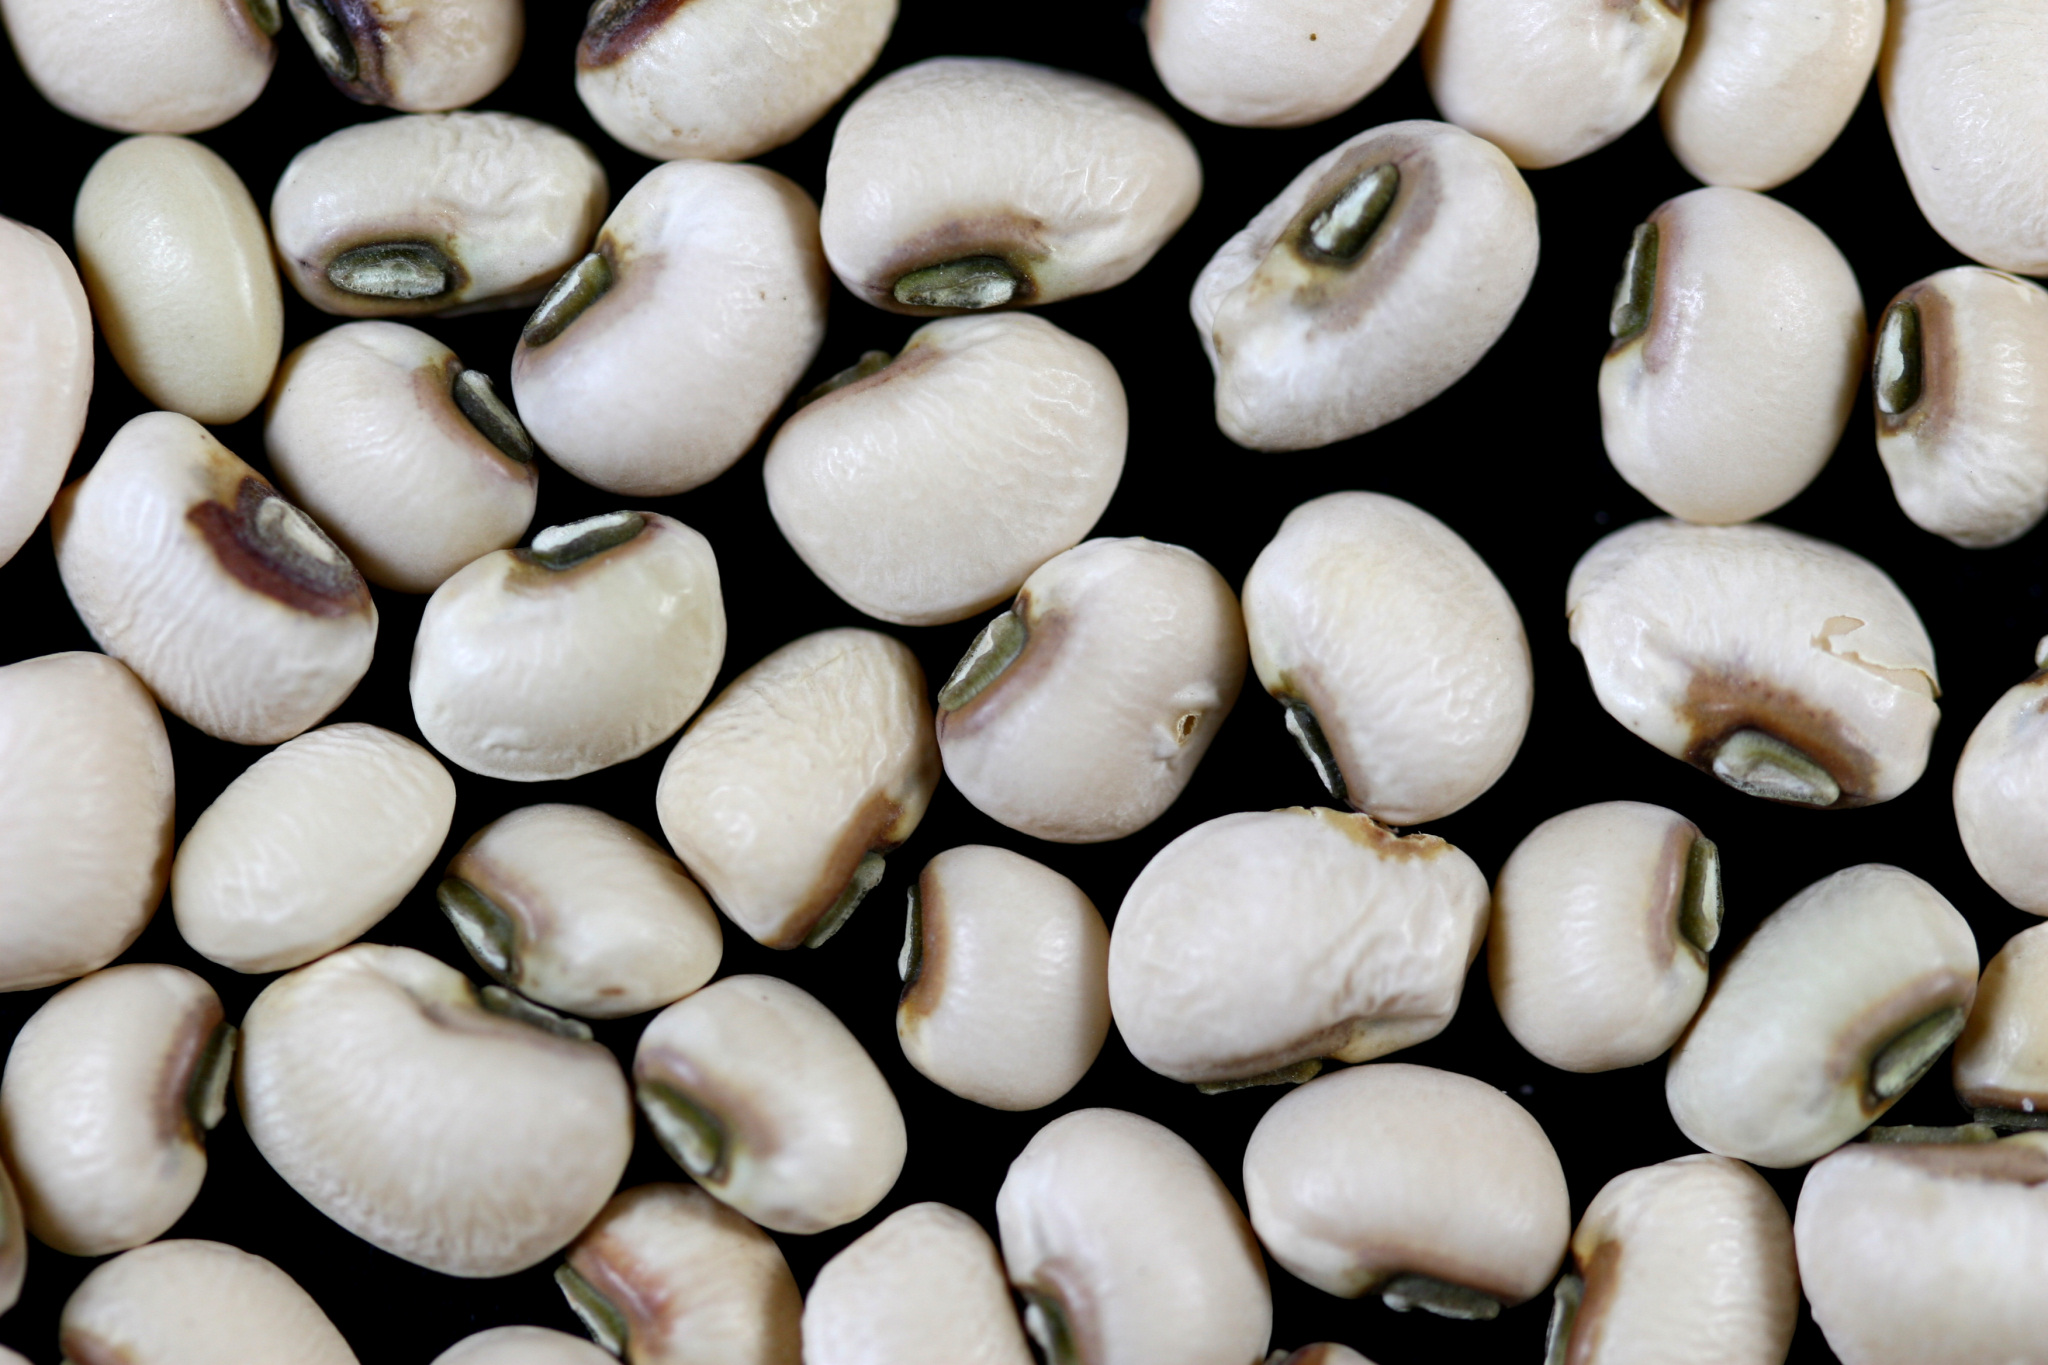 Image: Black Eyed Peas by Sanjay ach (License: CC BY-SA 3.0 Unported)